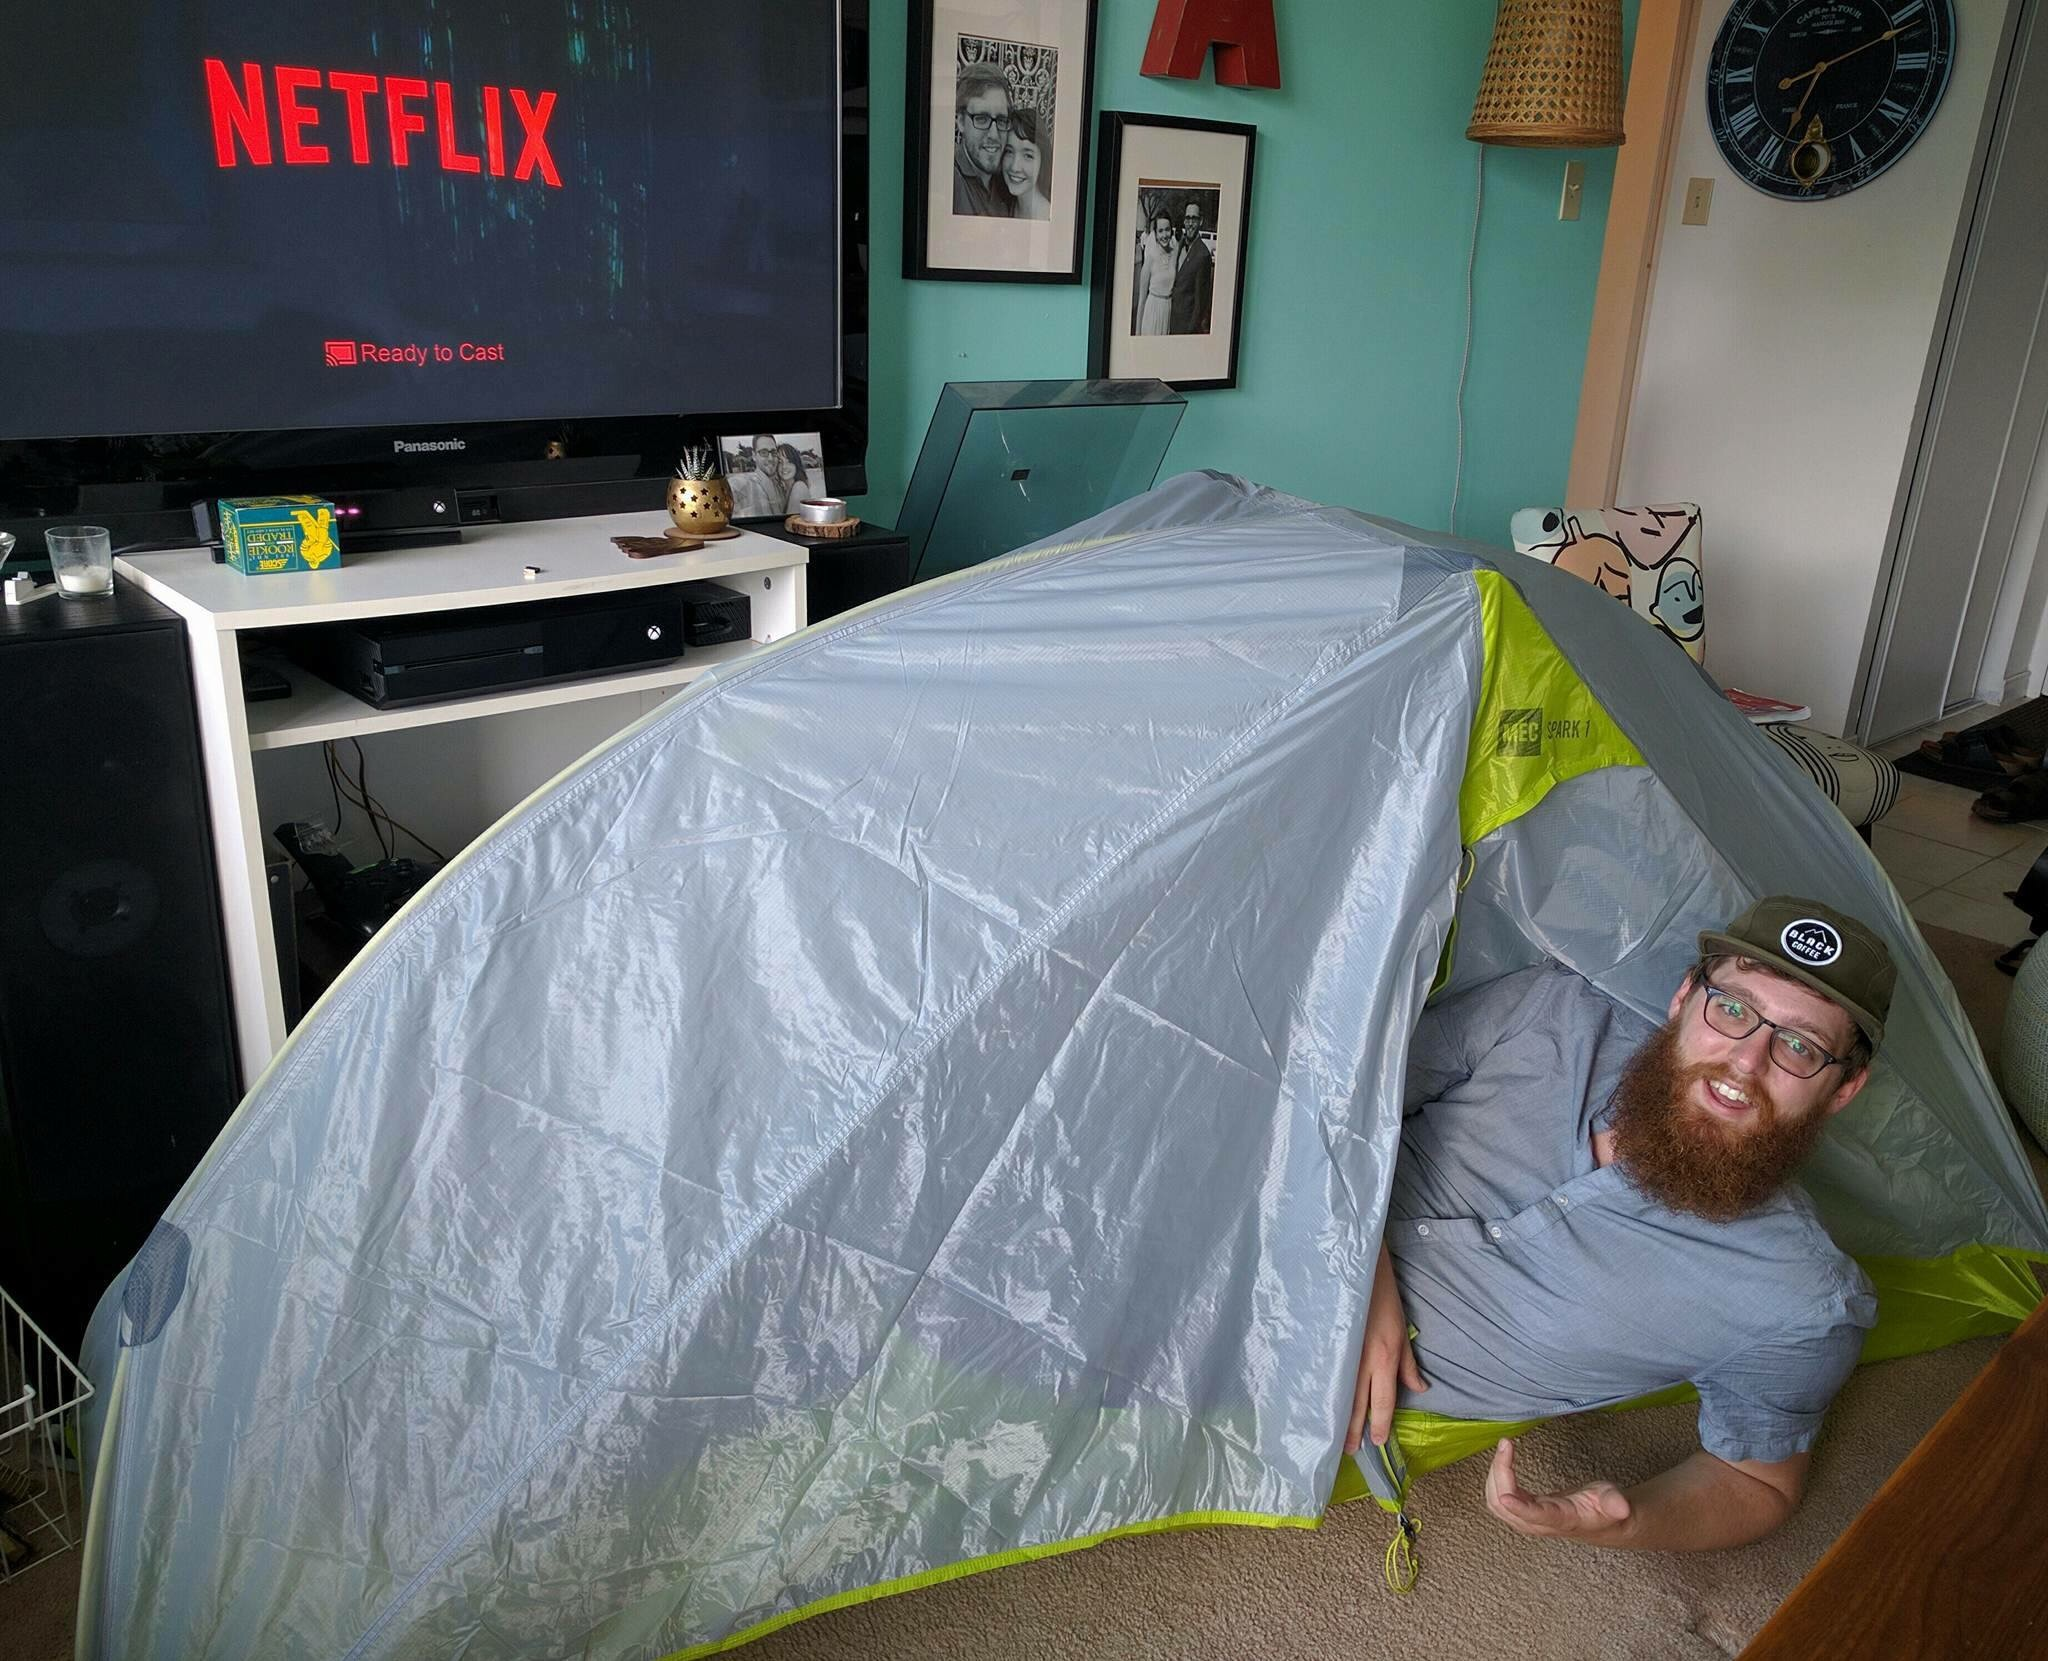 Hintonburg Hipster Practices Pitching Tent in Living Room to Prepare for First Authentic Camping Trip